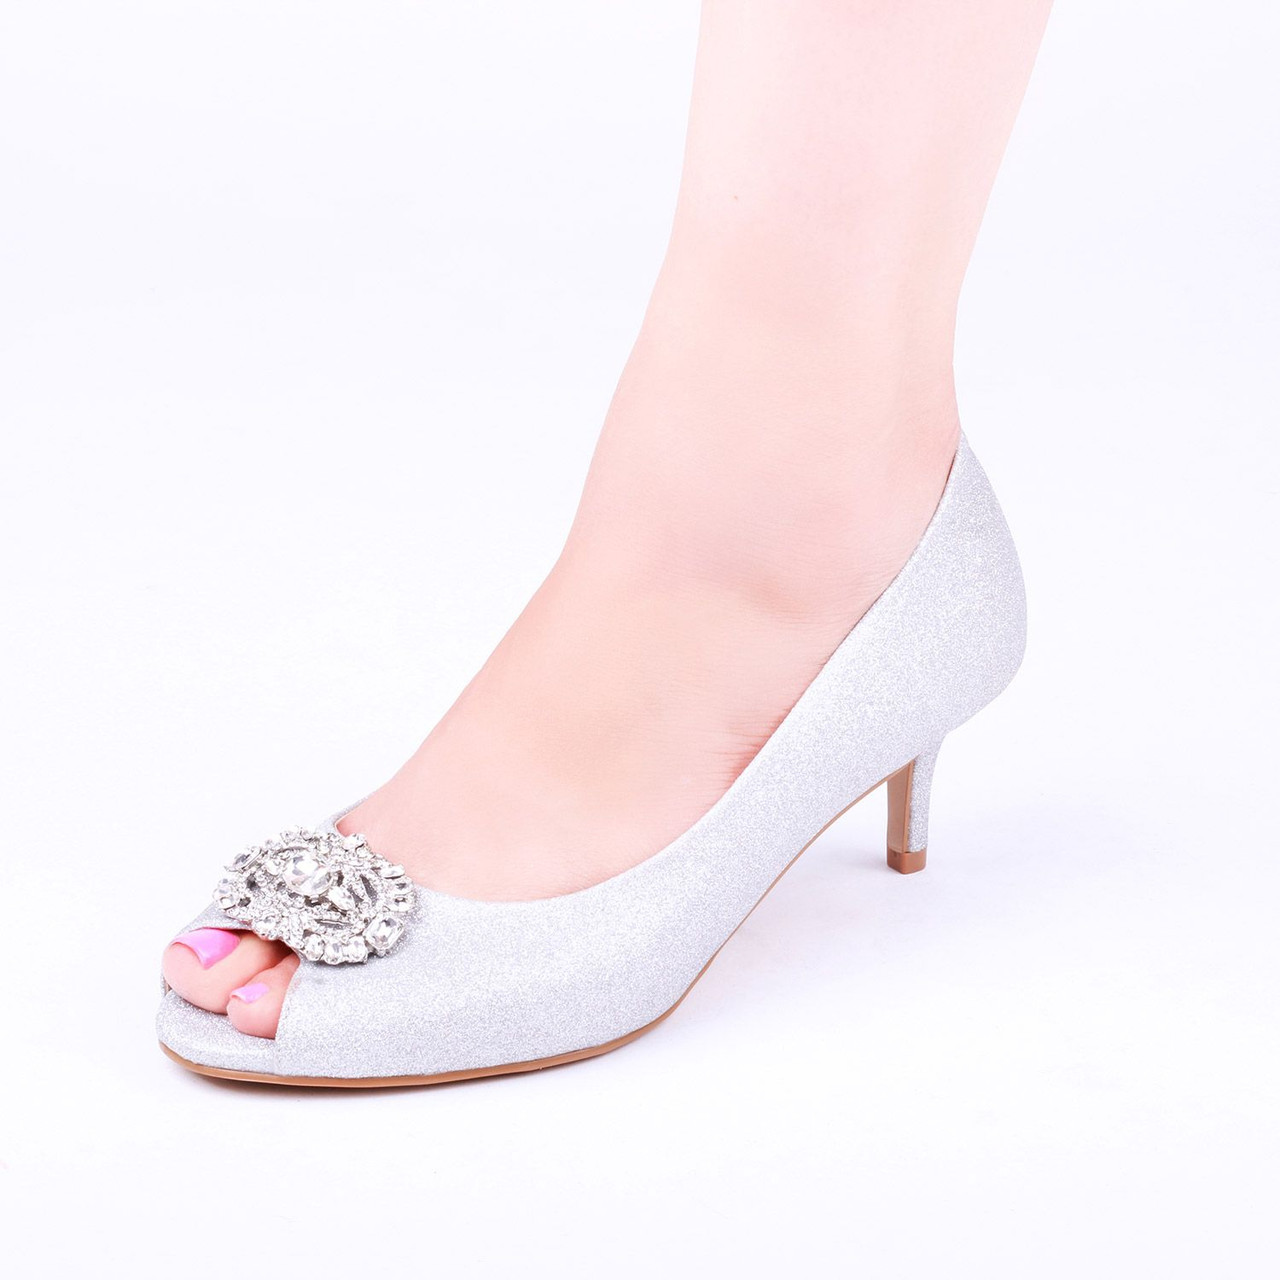 Paradox London Prunella Silver - Pink Collection - Wide Size